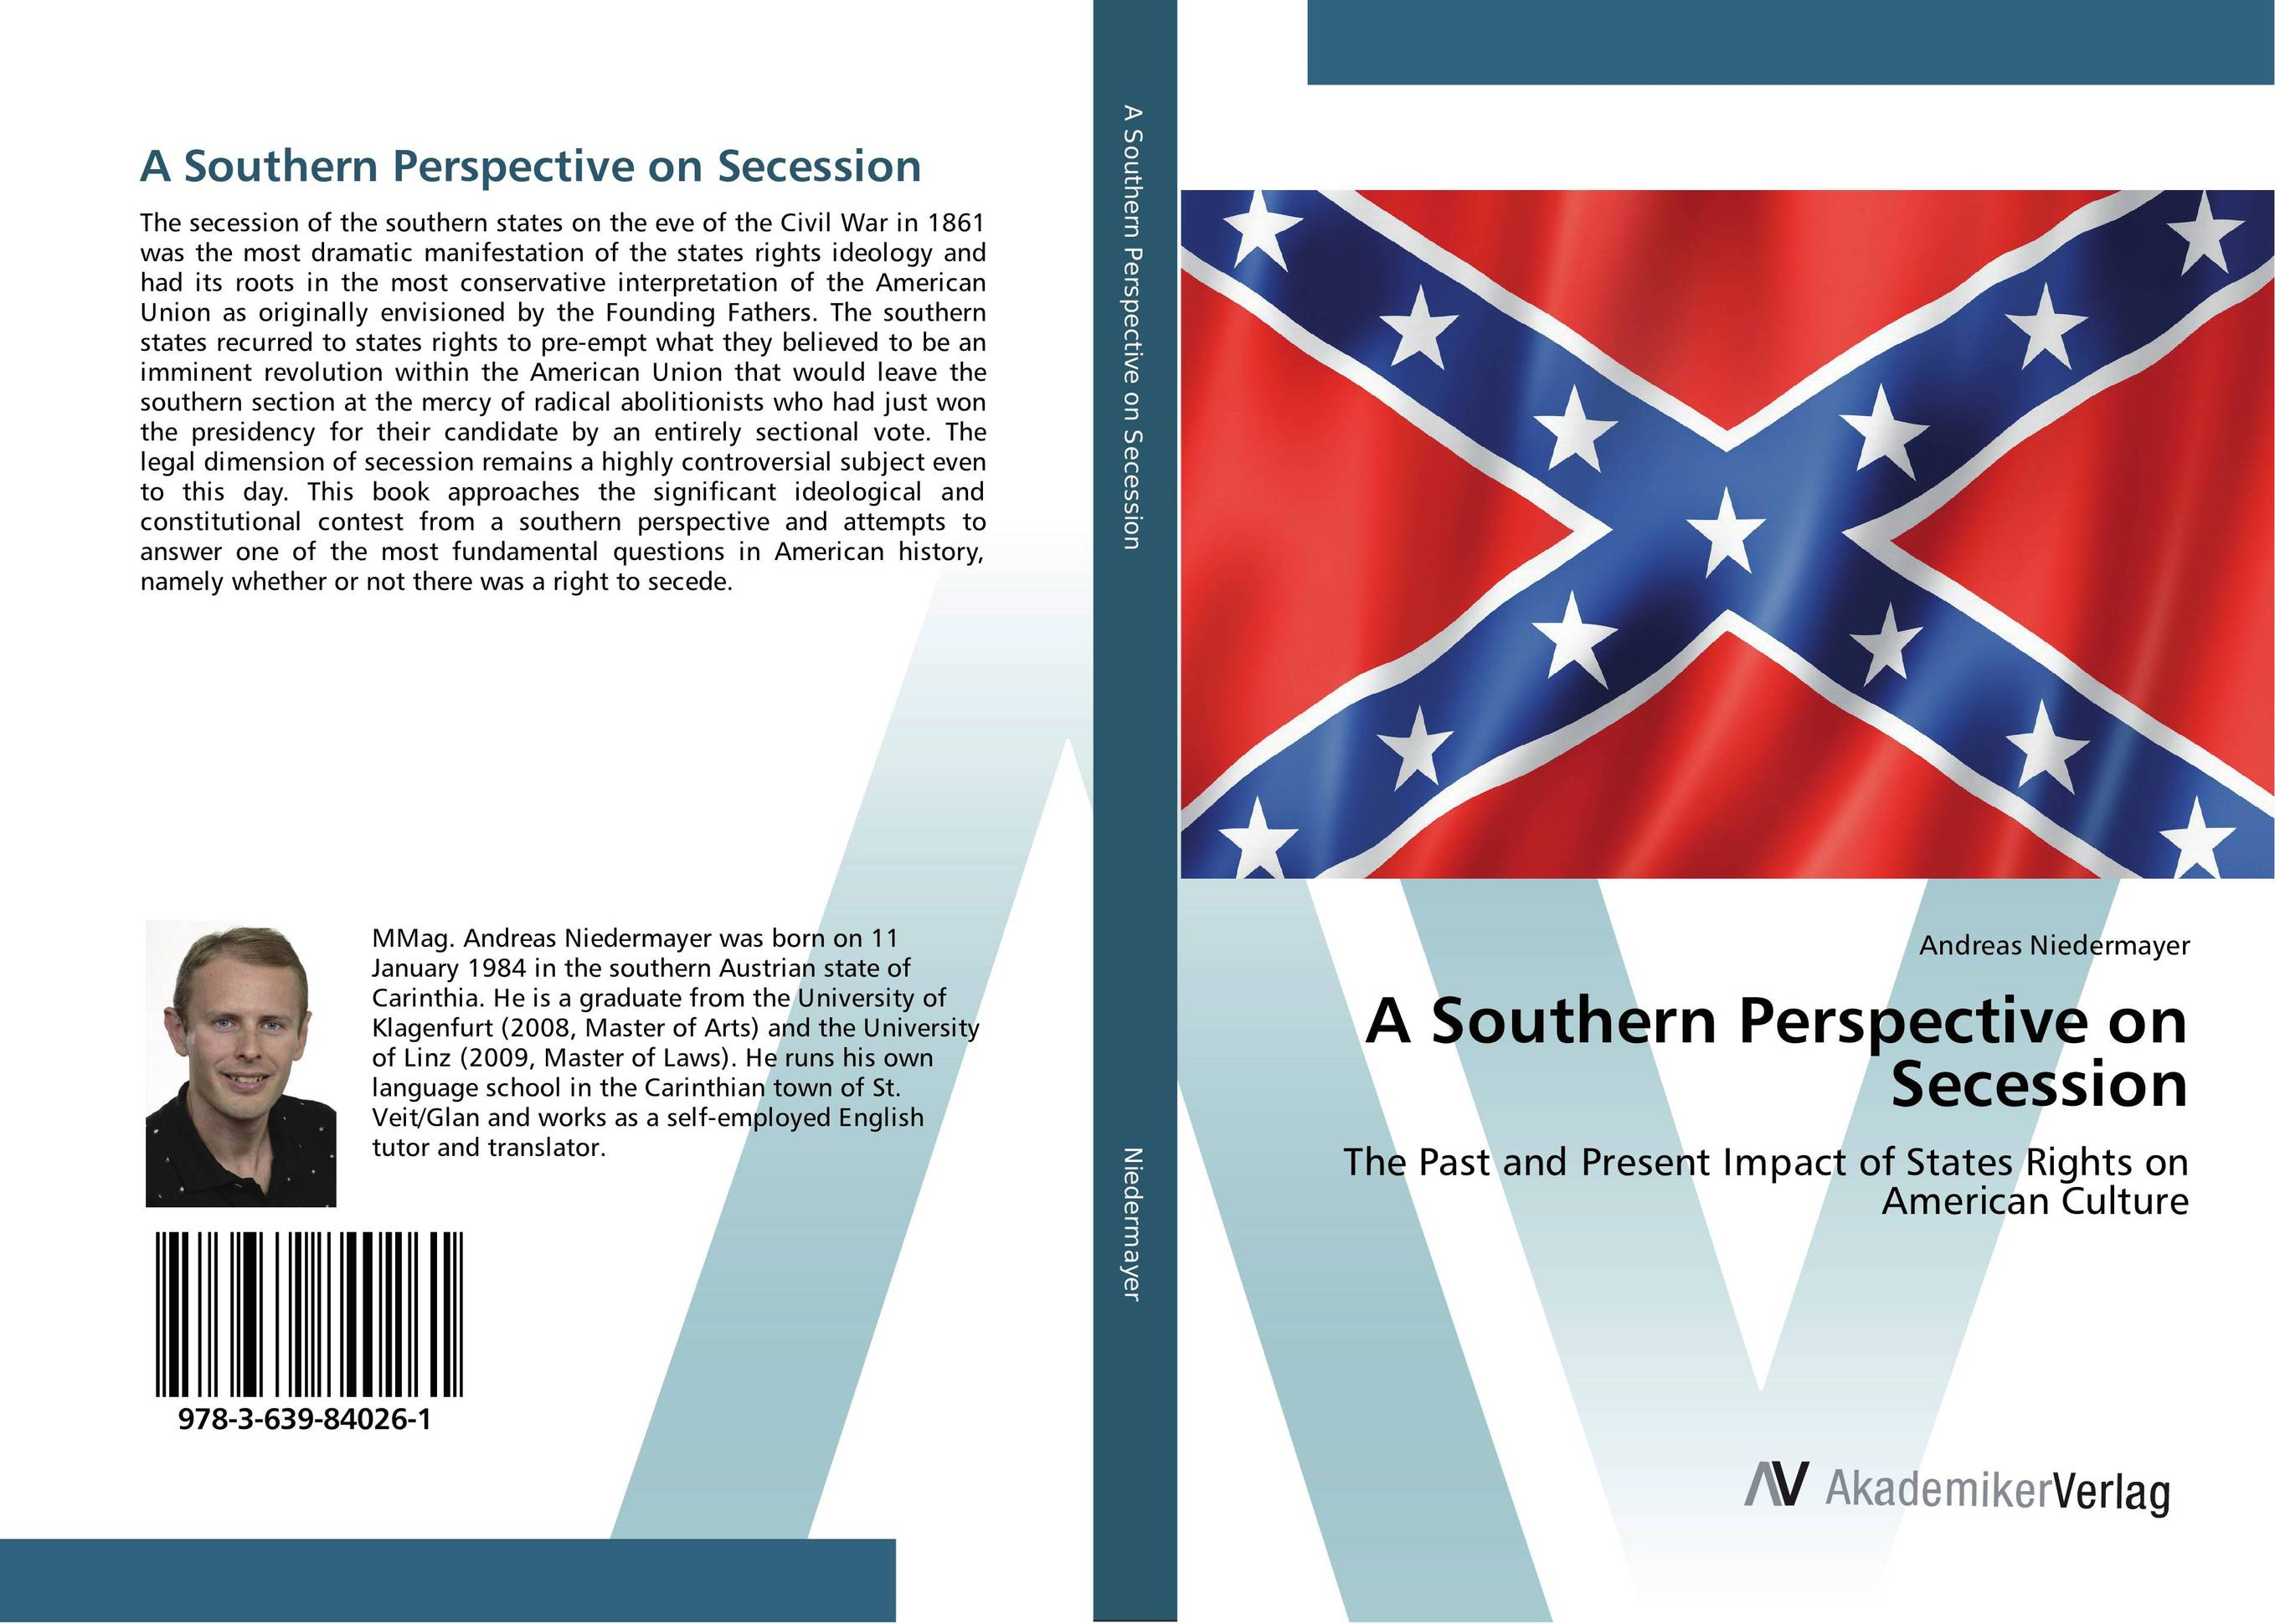 A Southern Perspective on Secession painted by a distant hand – mimbres pottery of the american southwest